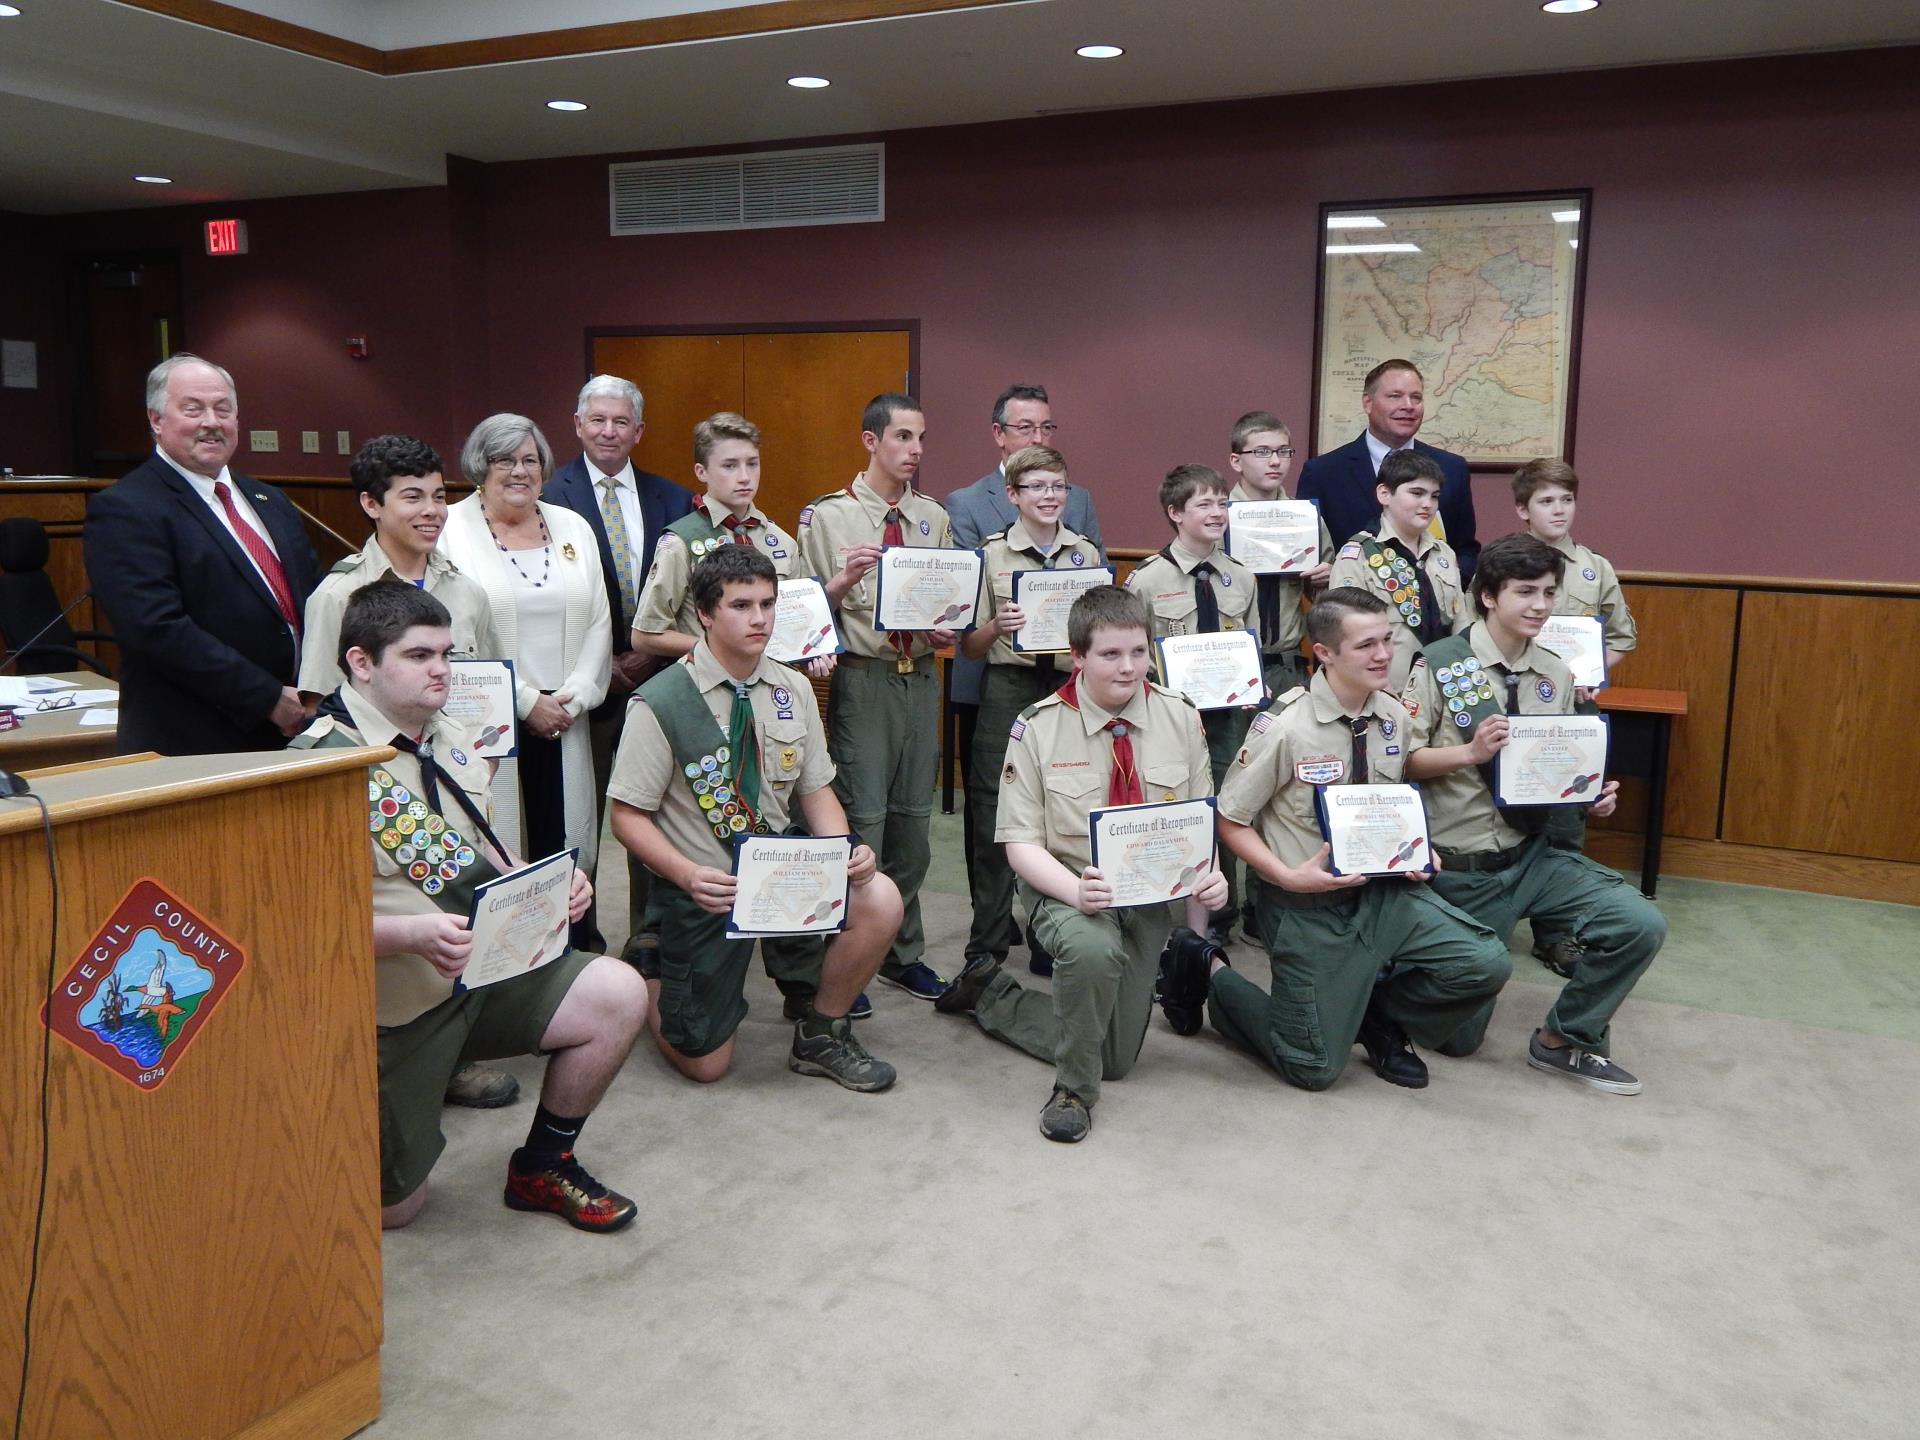 2016 Presentation to Boy Scouts First Class Rank